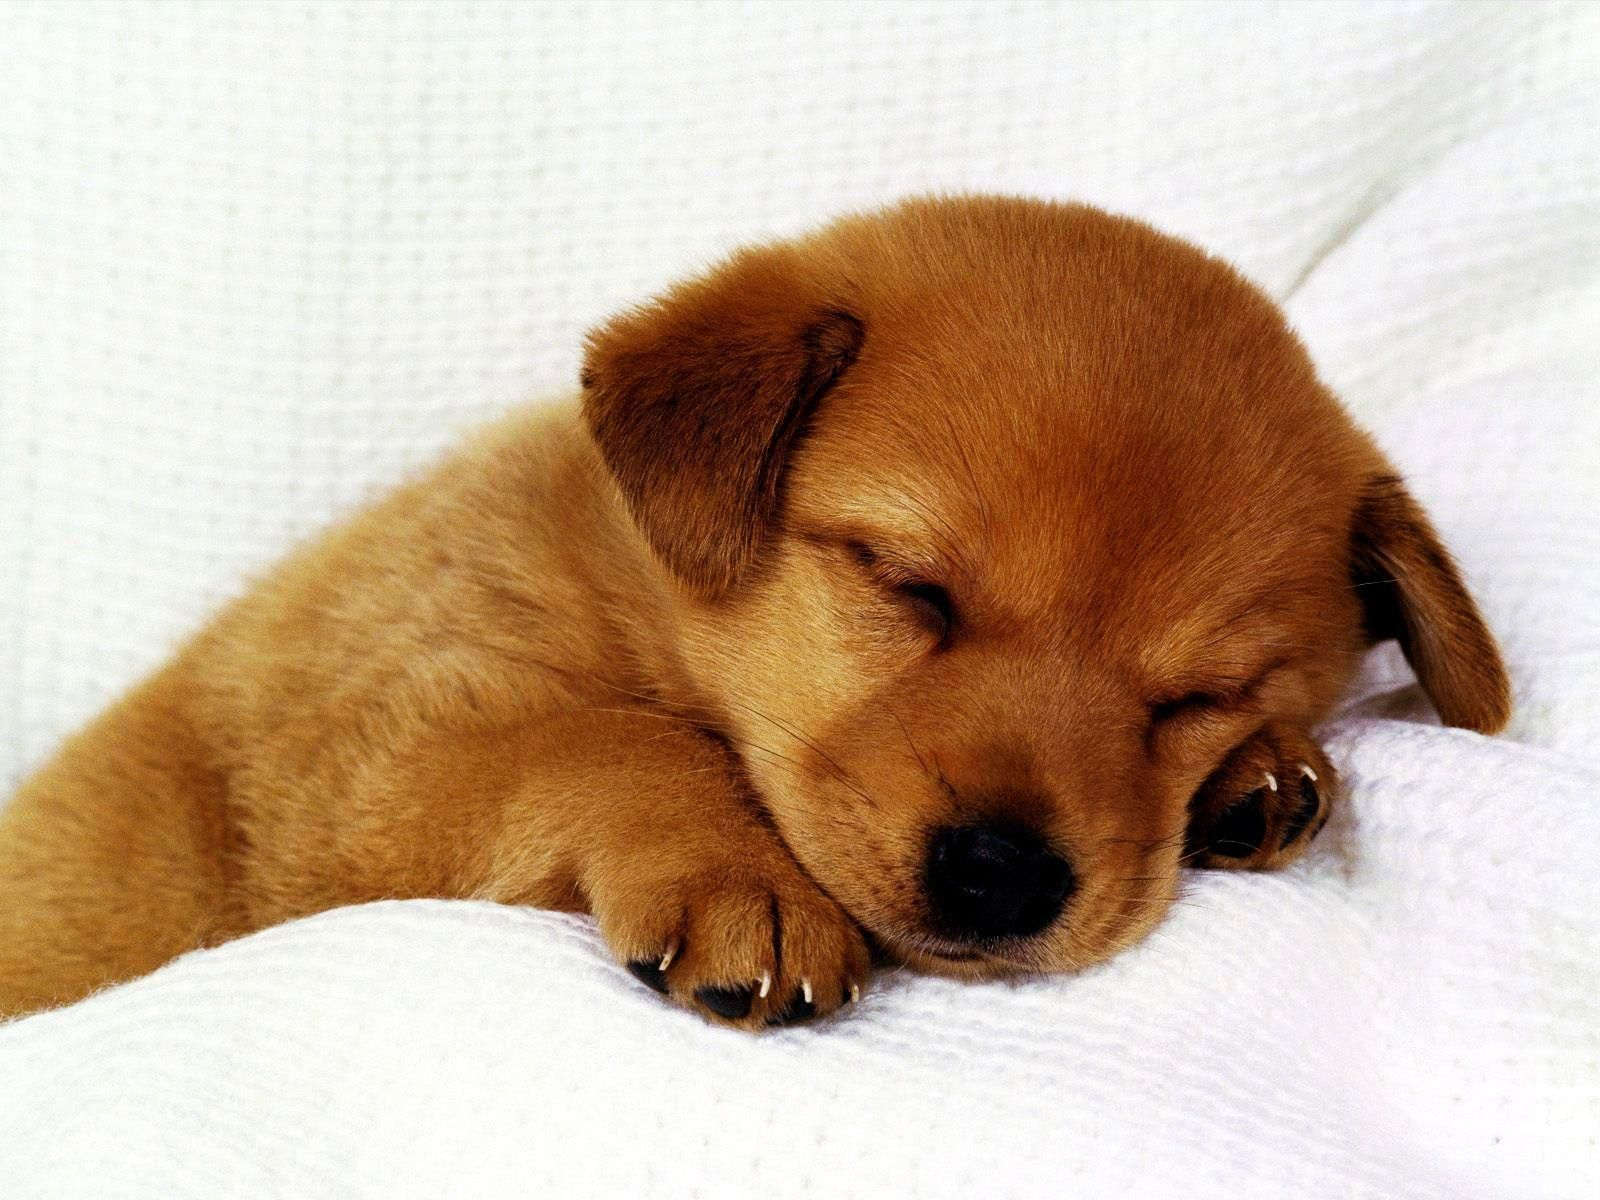 Cute Puppy Background Hd Puppy Backgrounds Cute Puppies Images Cute Puppies